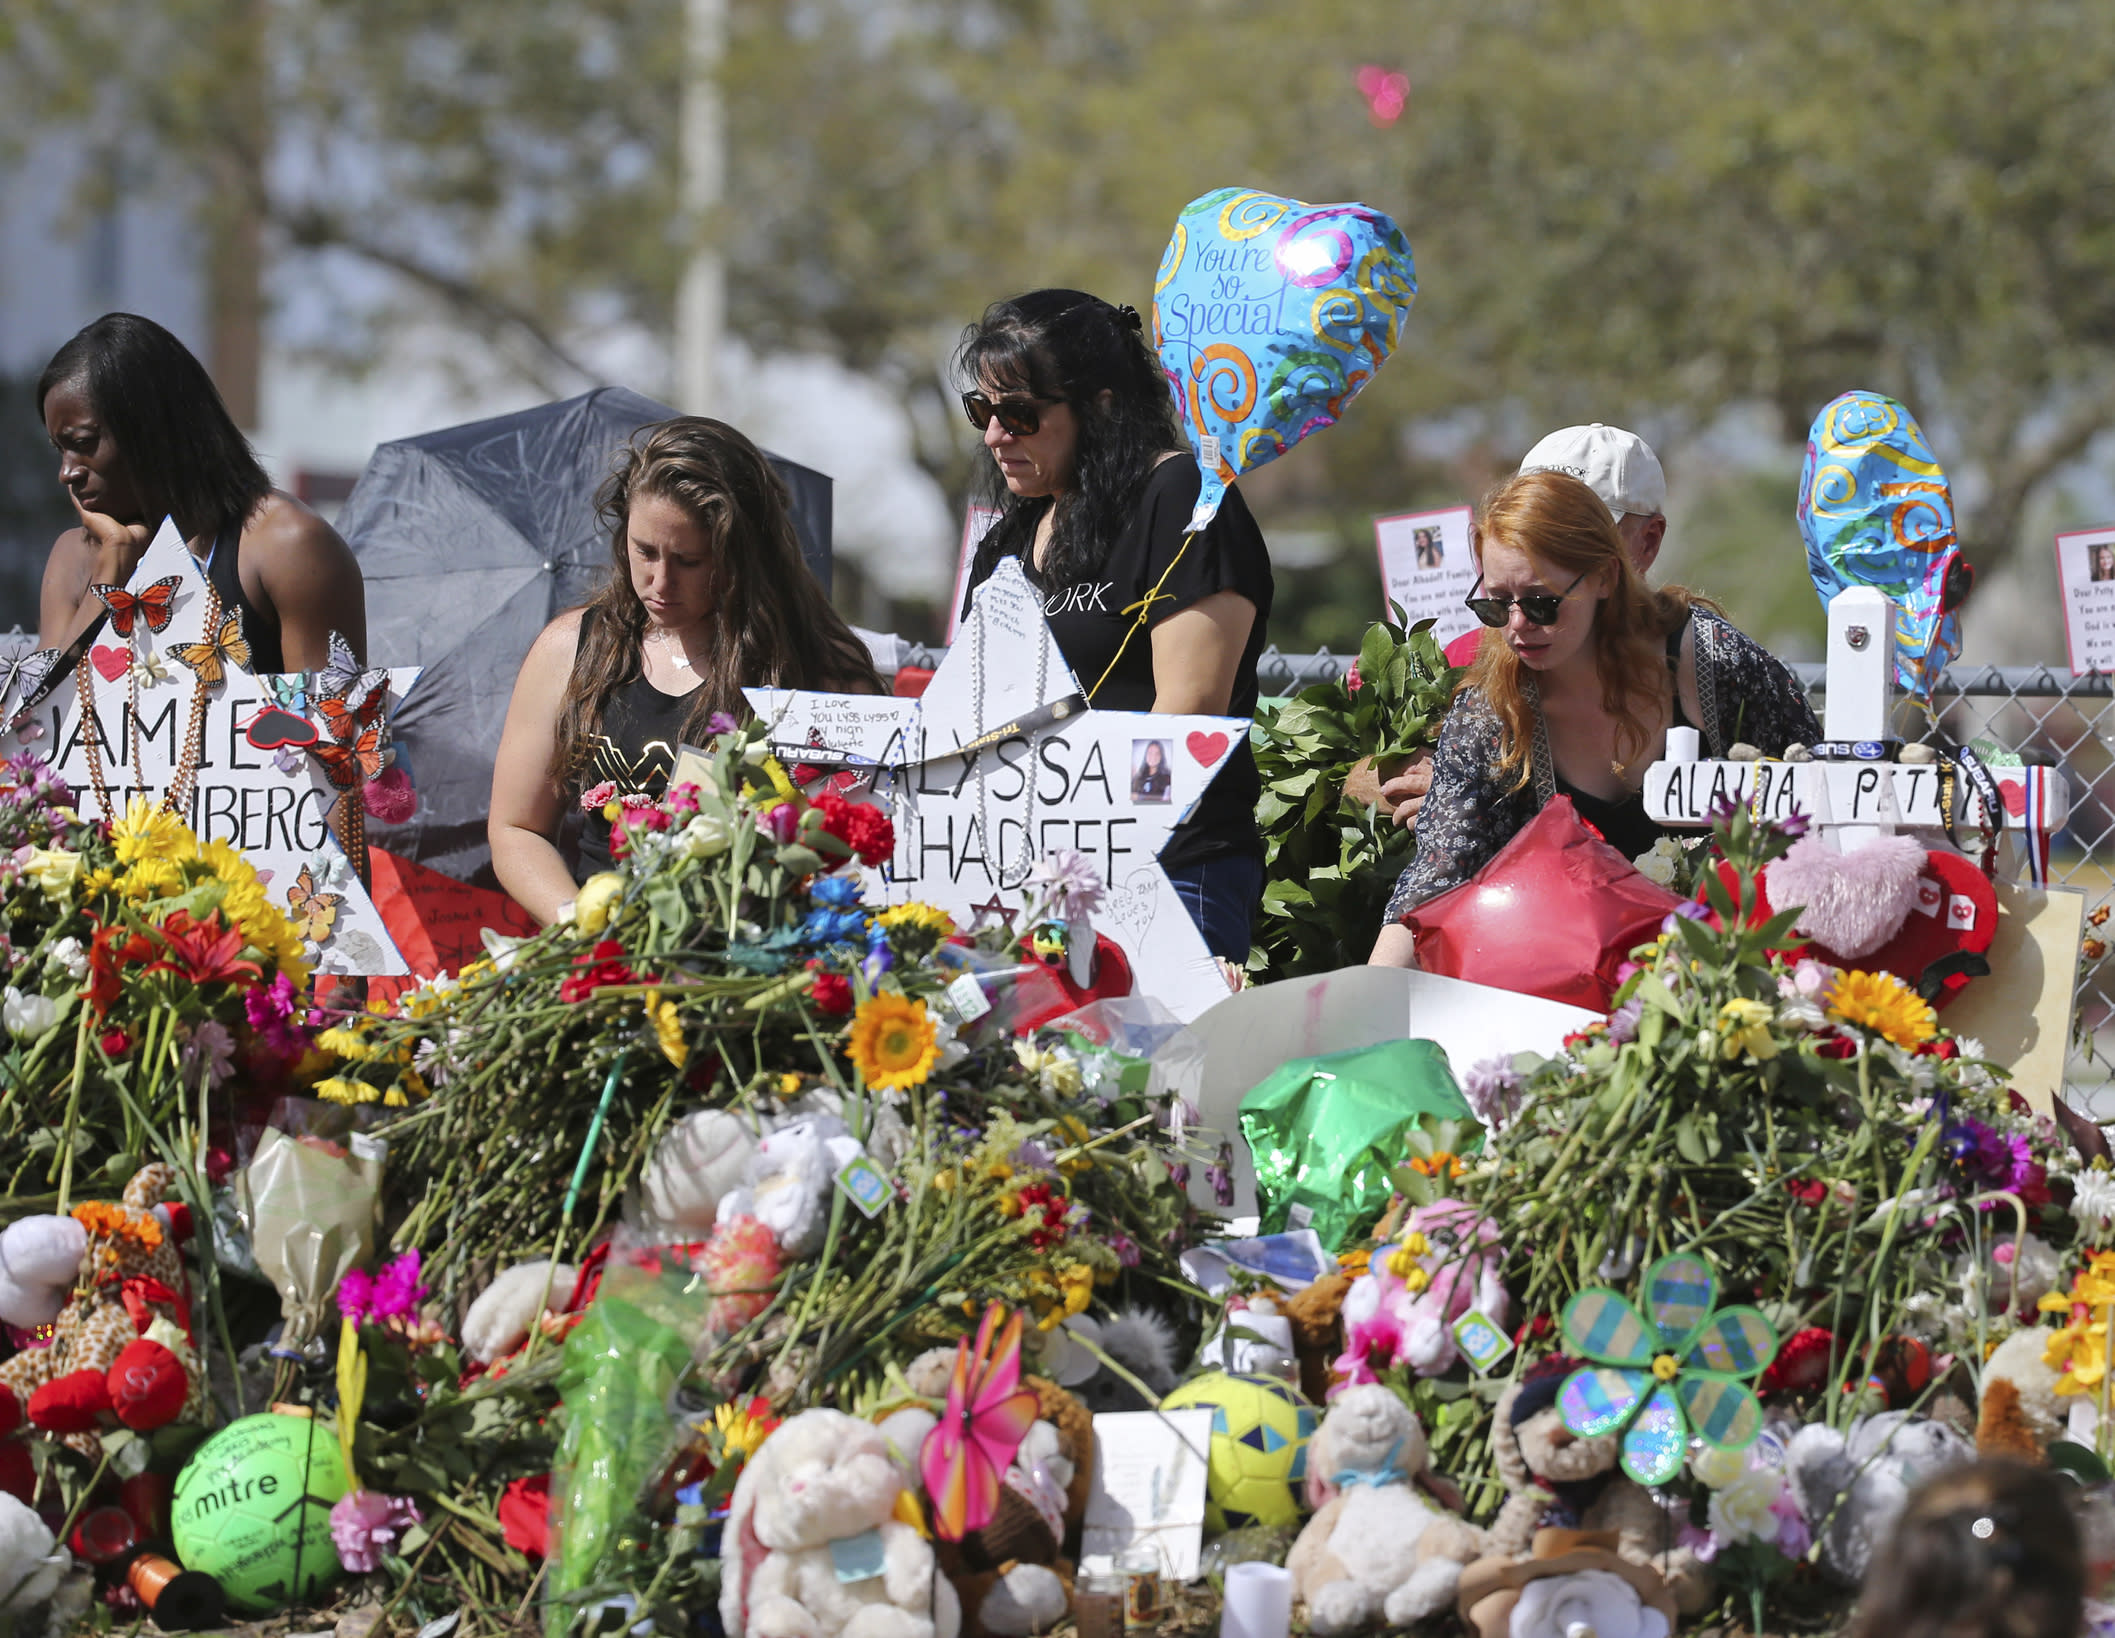 FILE - In this Feb. 25, 2018 file photo, mourners bring flowers as they pay tribute at a memorial for the victims of the shooting at Marjory Stoneman Douglas High School, in Parkland, Fla. The community of Parkland, Florida, is focusing on suicide prevention programs after two survivors of the Florida high school massacre there killed themselves this month. Parkland Mayor Christine Hunschofsky said Monday, March 25, 2019, that officials are publicizing the available counseling services after a second Marjory Stoneman Douglas High School student apparently killed himself over the weekend. (David Santiago/Miami Herald via AP, File)